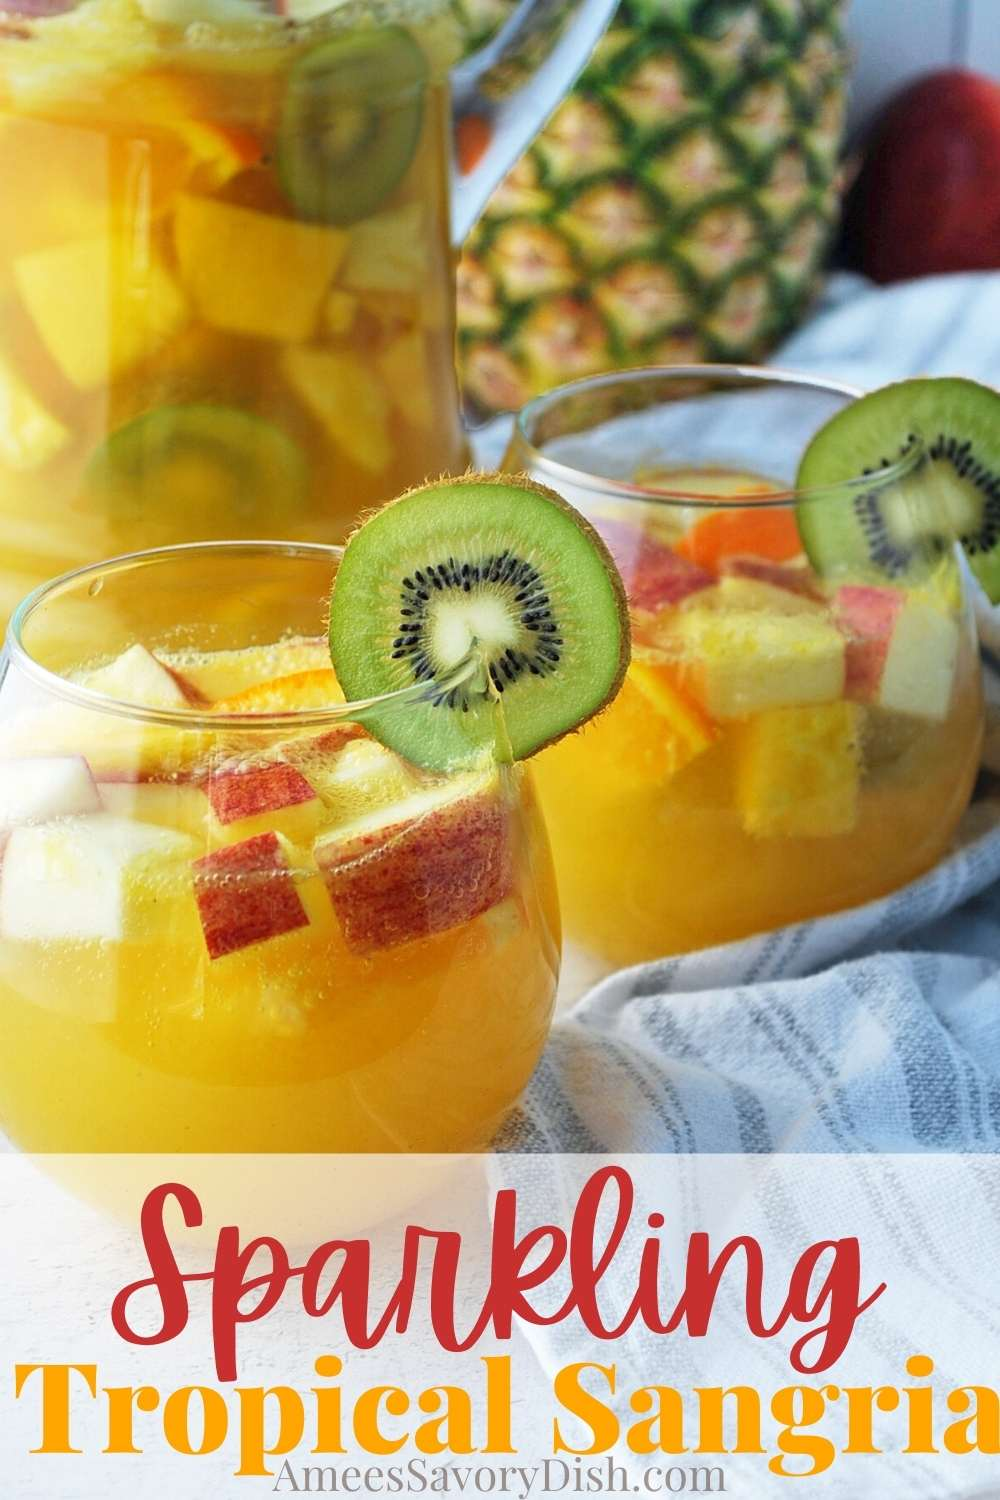 Sparkling tropical sangria is the perfect summer cocktail. Kiwi fruit, oranges, and bubbly prosecco make for a light, refreshing summer sangria recipe. via @Ameessavorydish